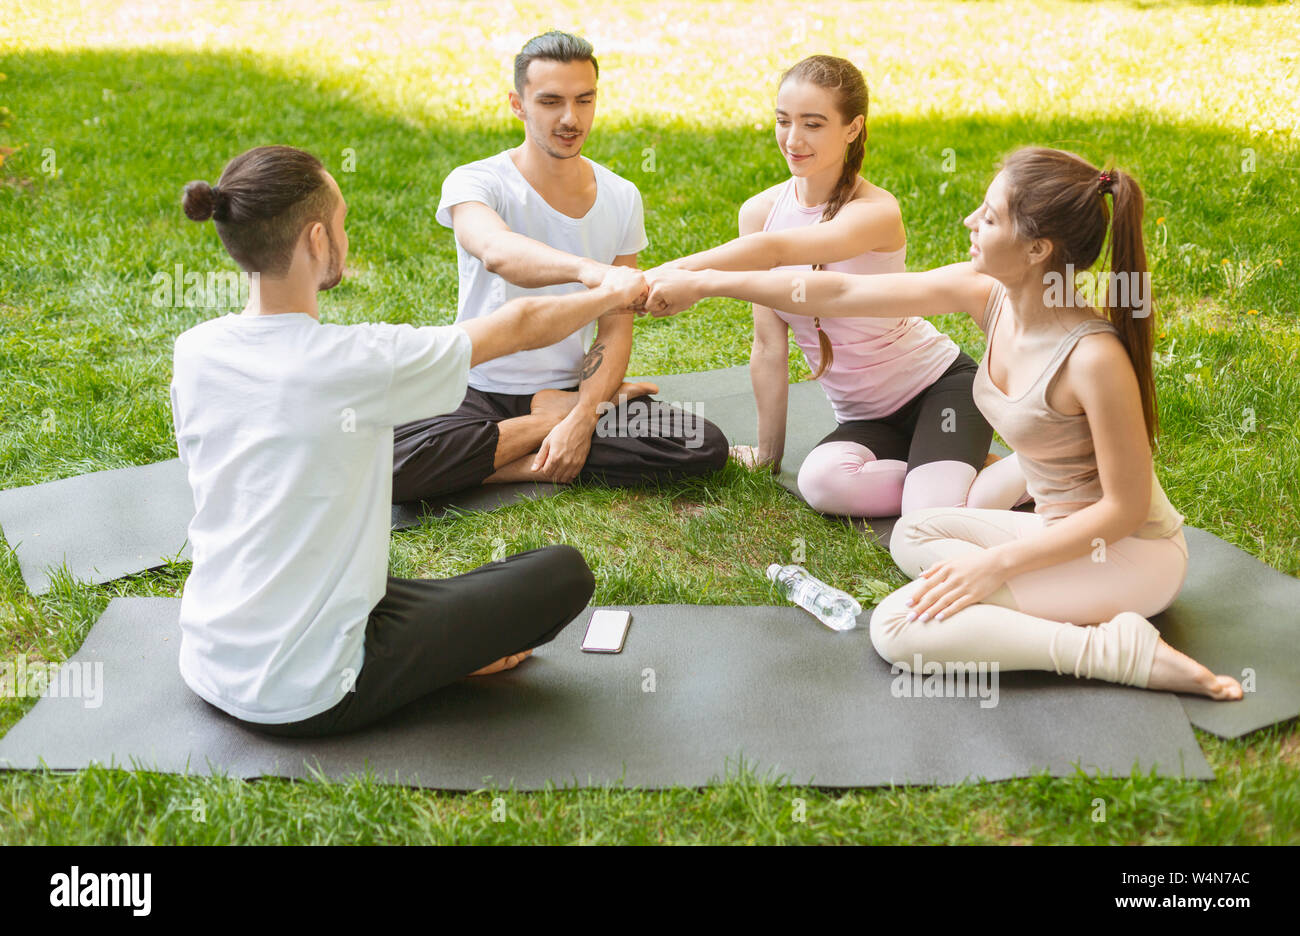 Group of fit happy people fist bumping, celebrating success. Stock Photo